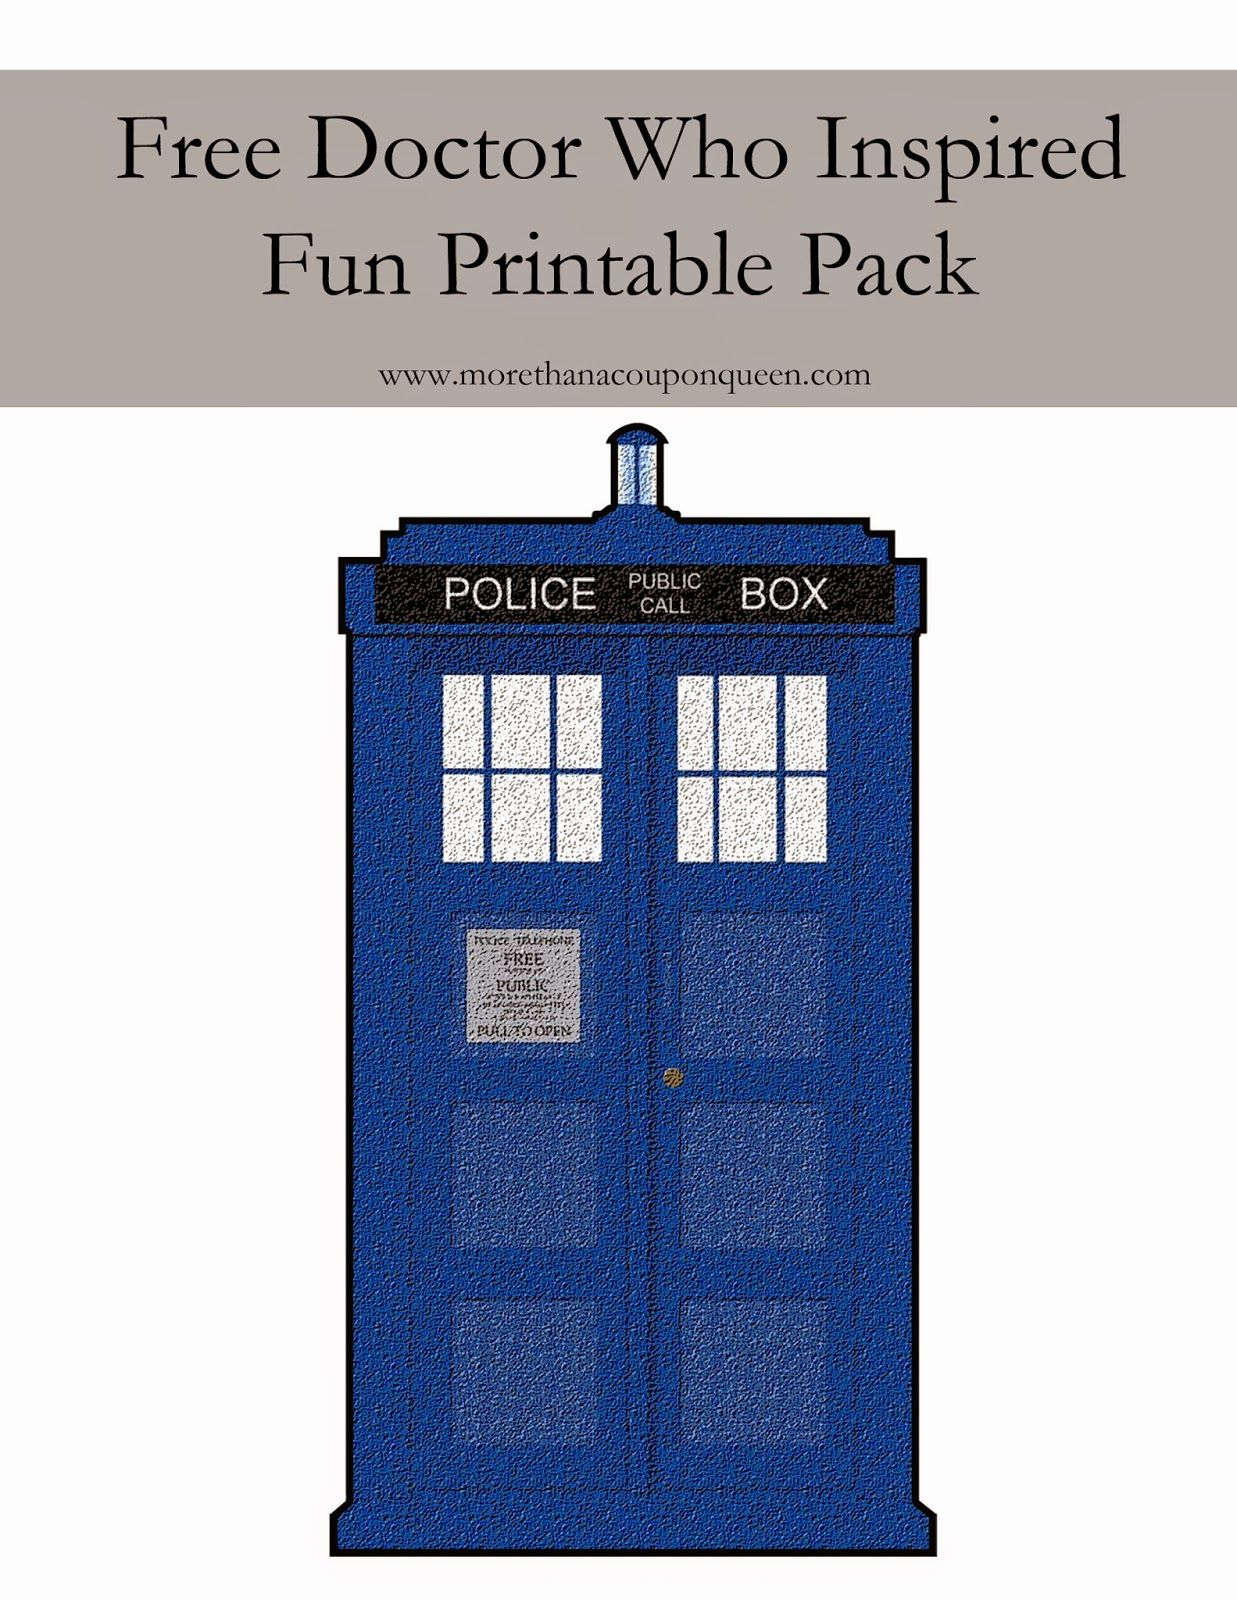 Free Doctor Who Printables Doctor Who Printable Doctor Who Crafts Doctor Who Party